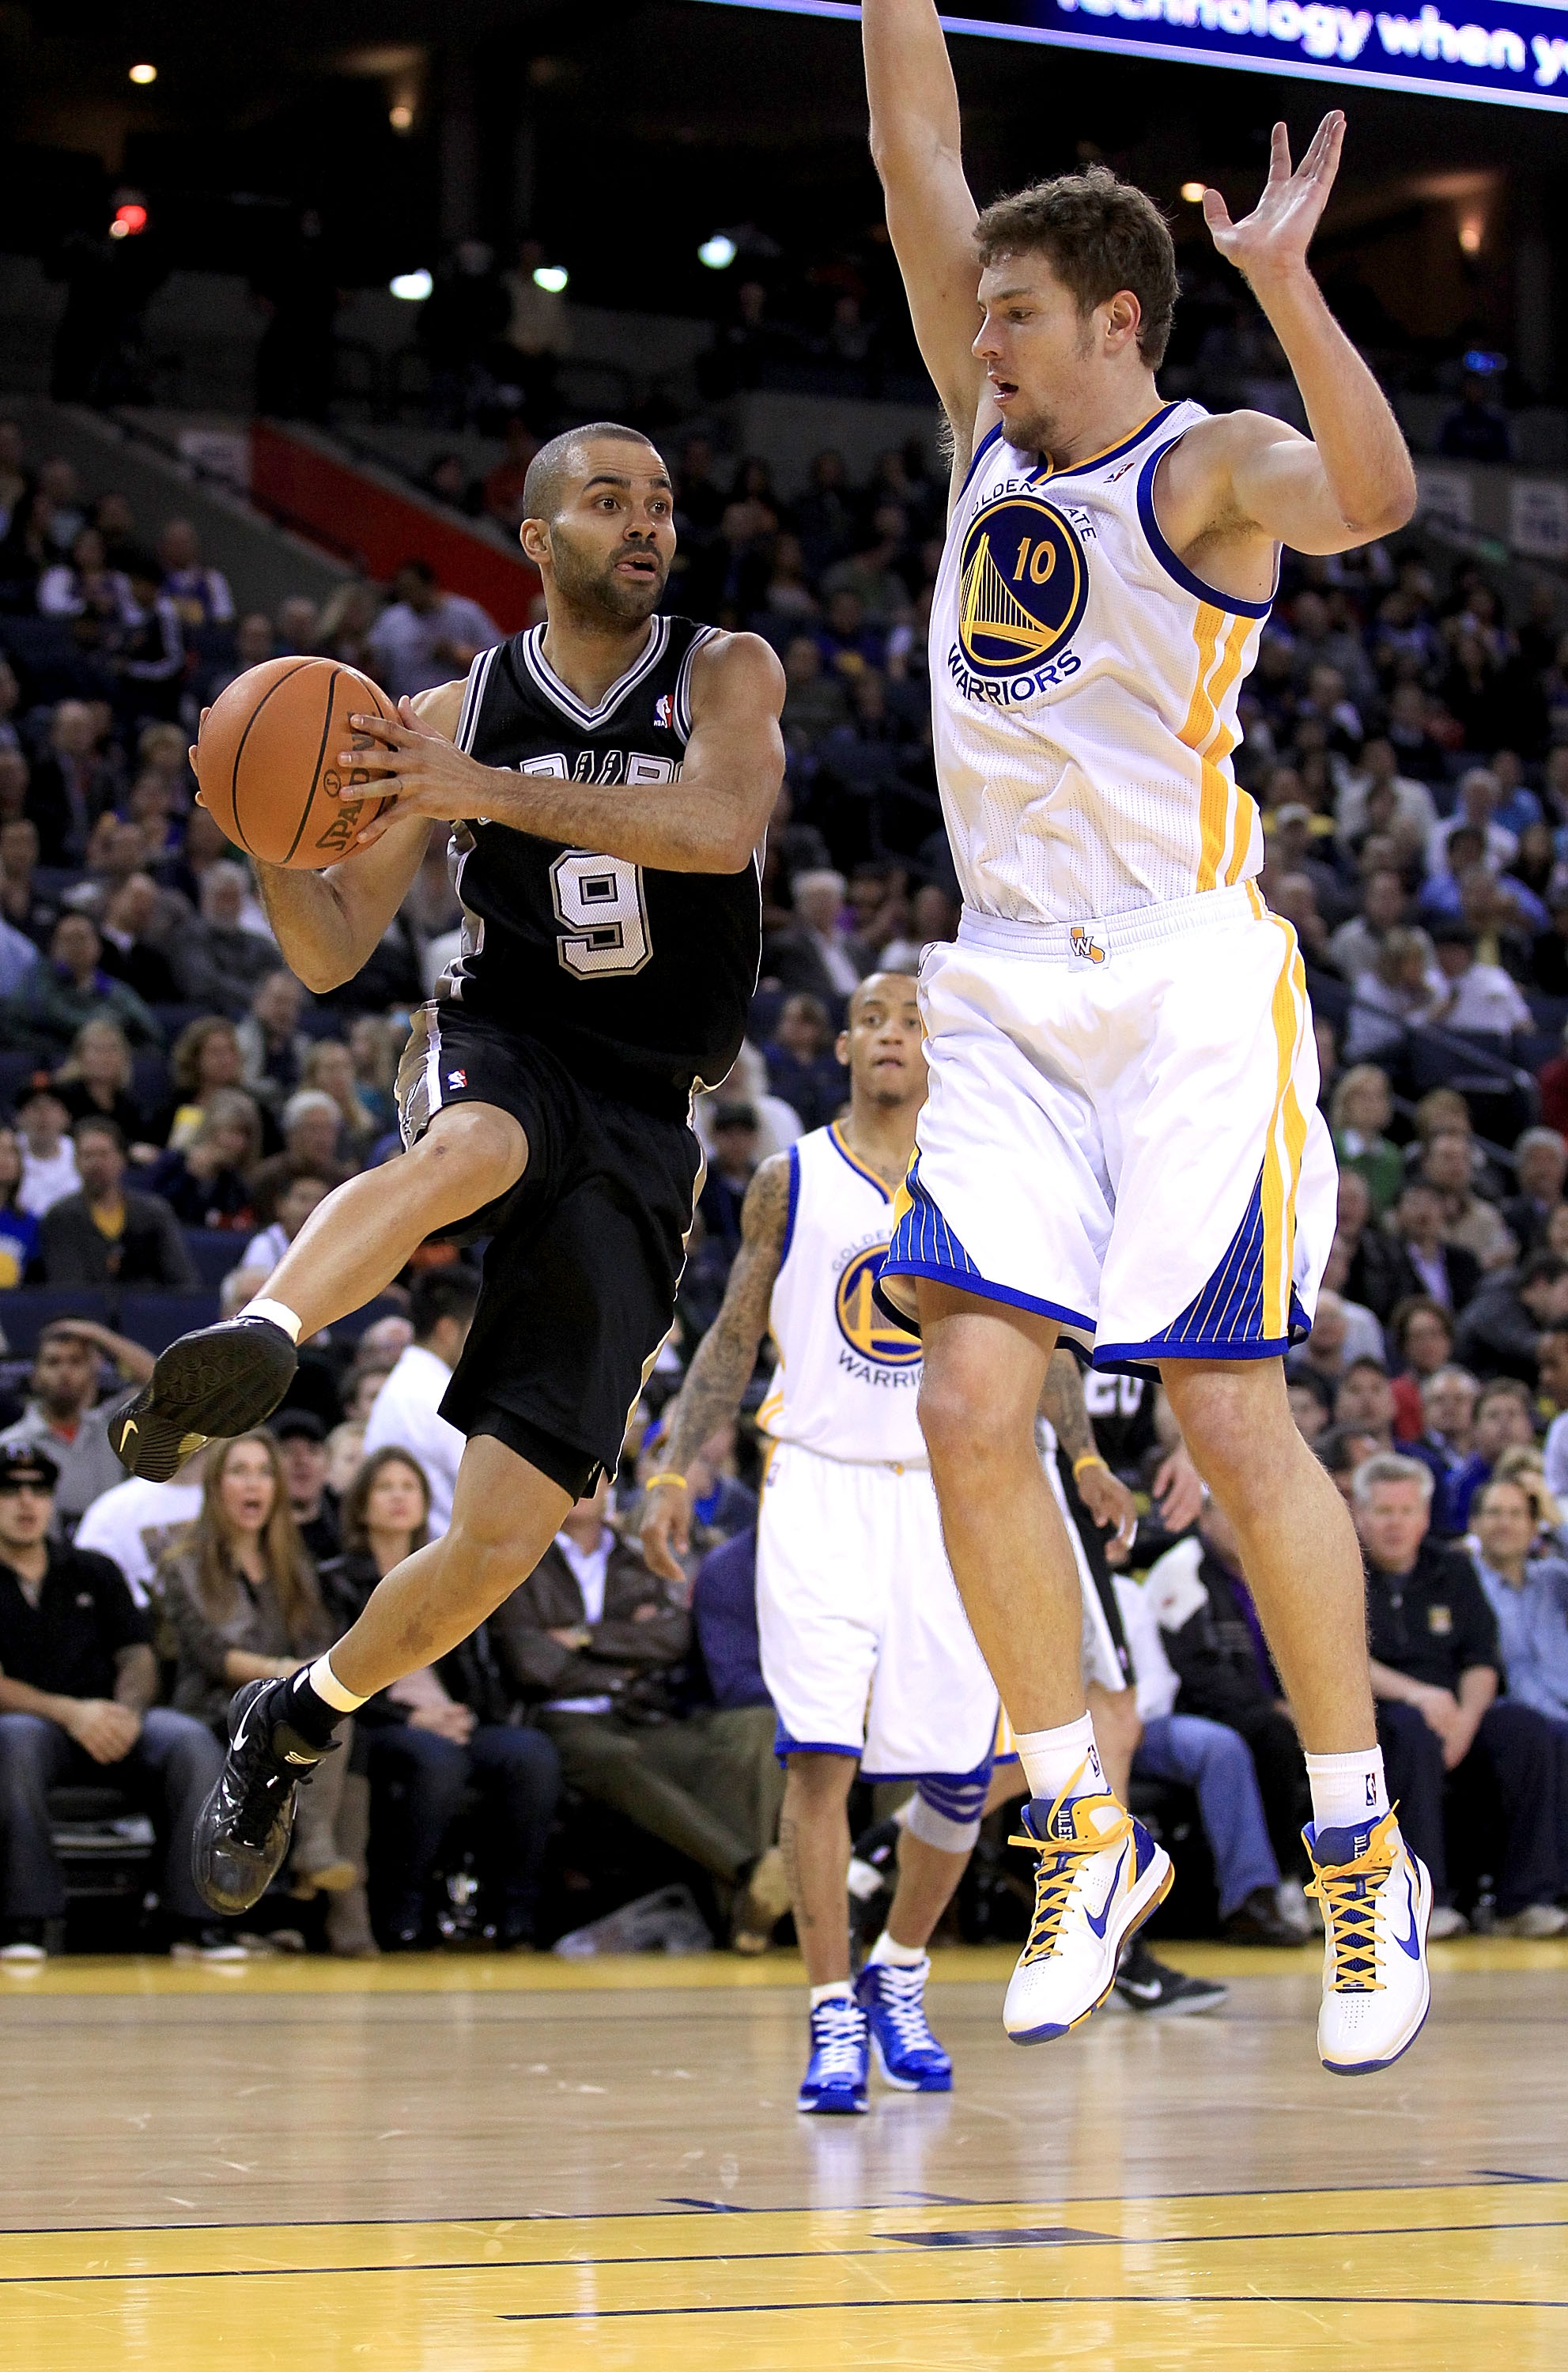 OAKLAND, CA - JANUARY 24:  Tony Parker #9 of the San Antonio Spurs drives on David Lee #10 of the Golden State Warriors at Oracle Arena on January 24, 2011 in Oakland, California.  NOTE TO USER: User expressly acknowledges and agrees that, by downloading